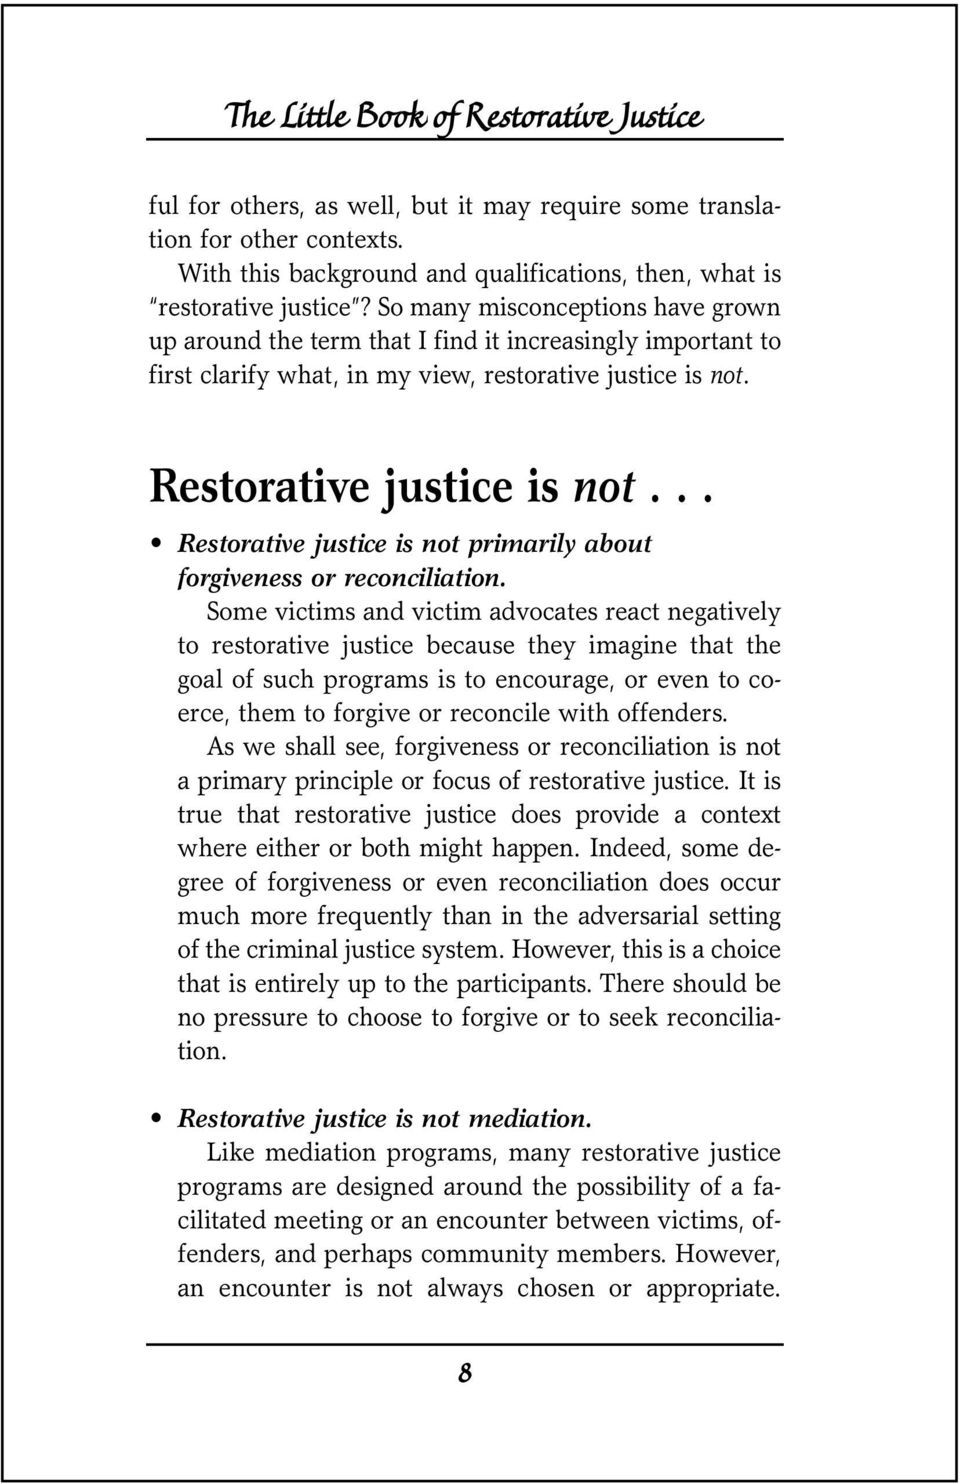 .. Restorative justice is not primarily about forgiveness or reconciliation.